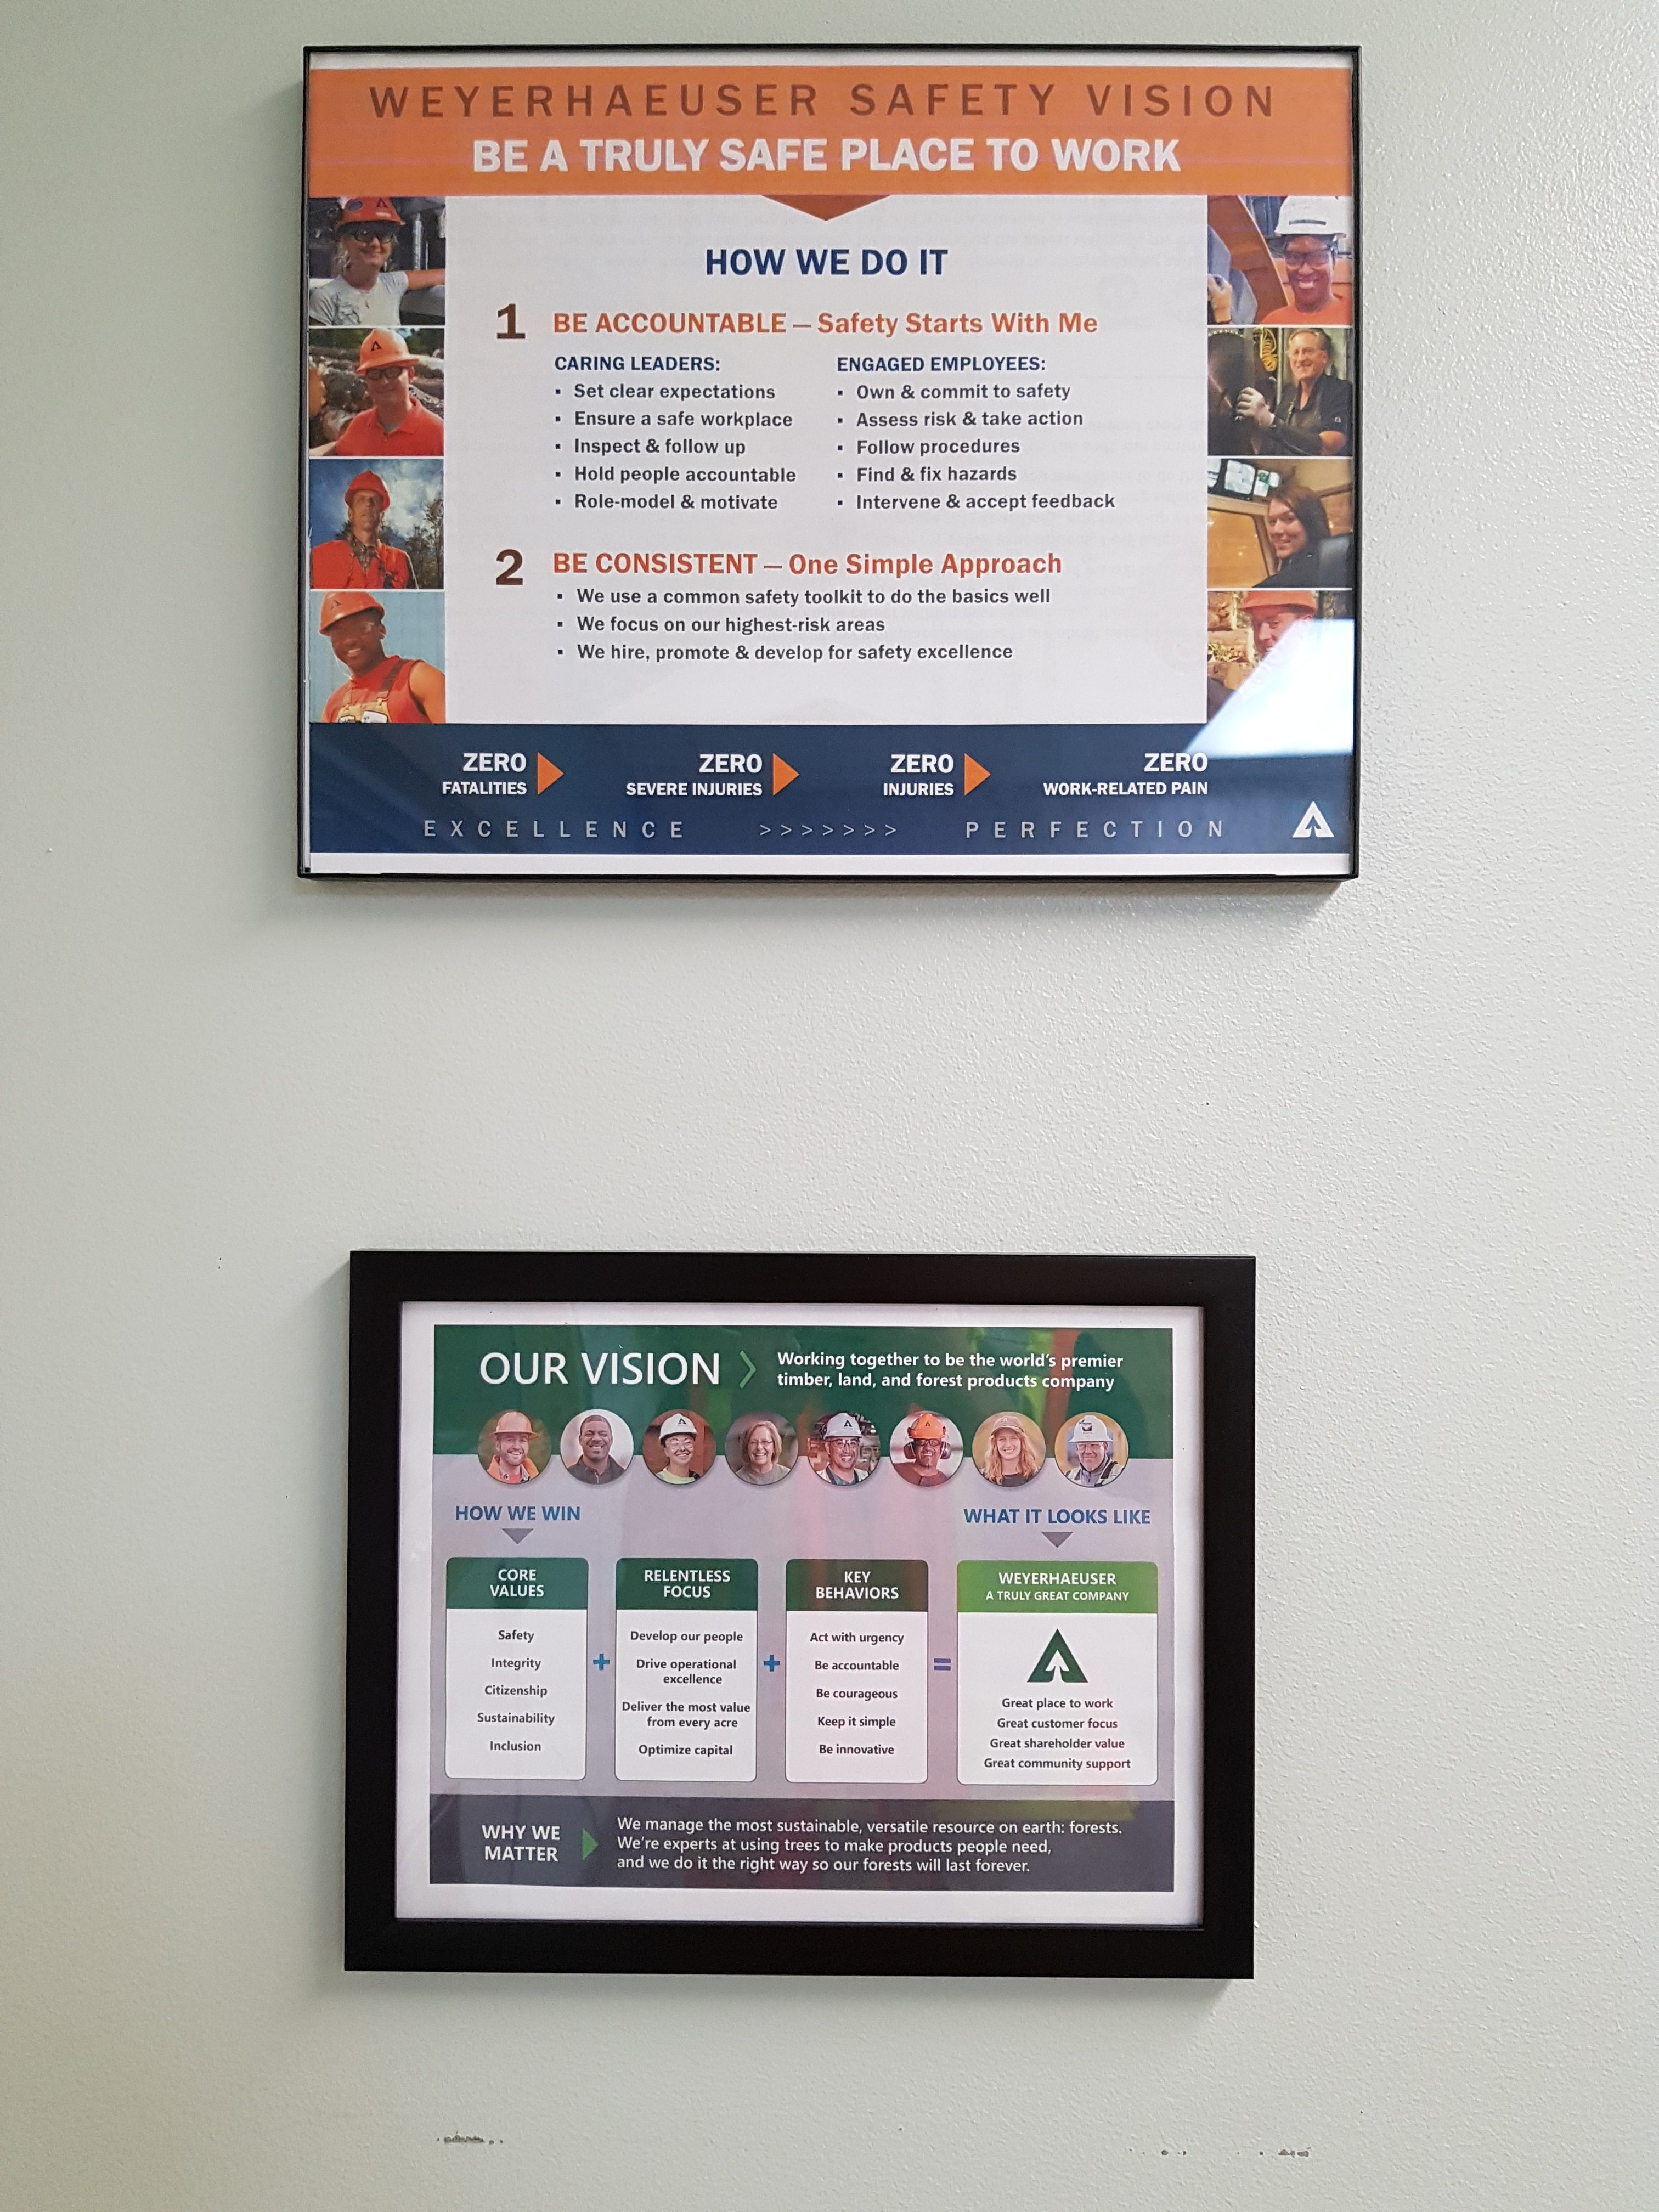 plaques about weyerhaeuser safety vision